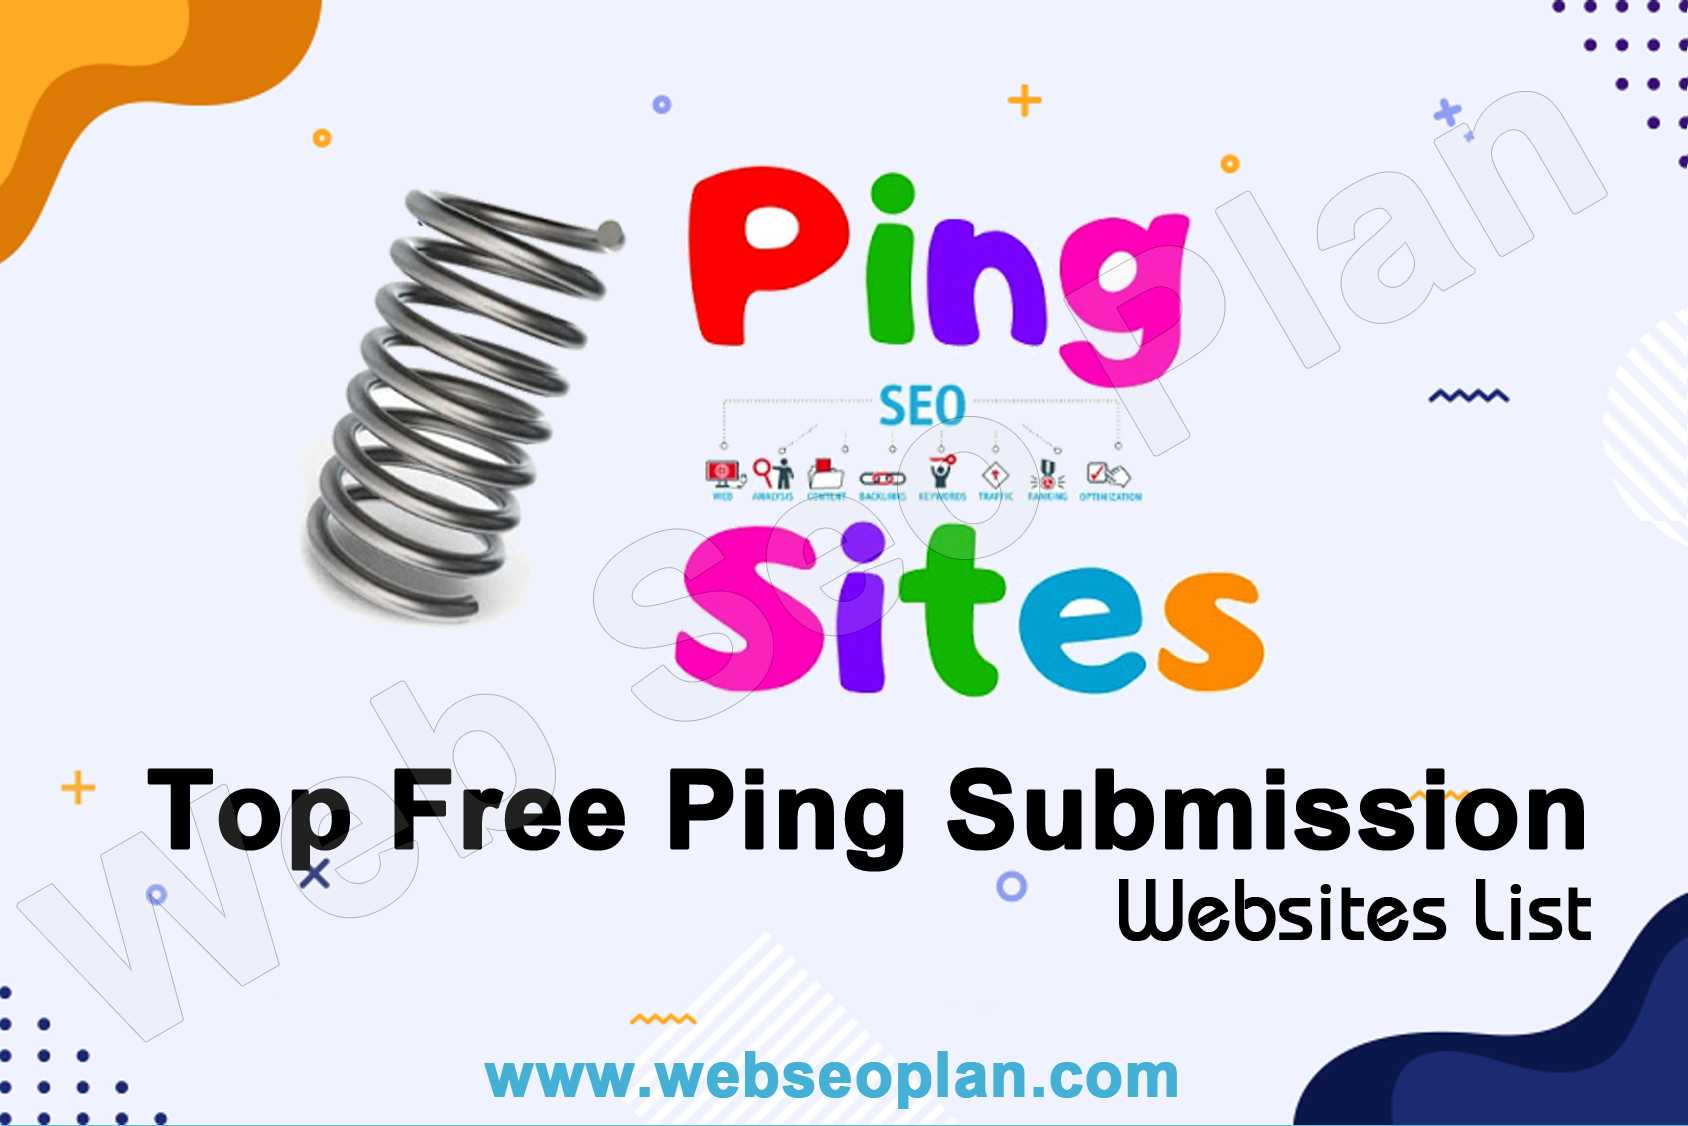 Top Free Ping Submission Site list